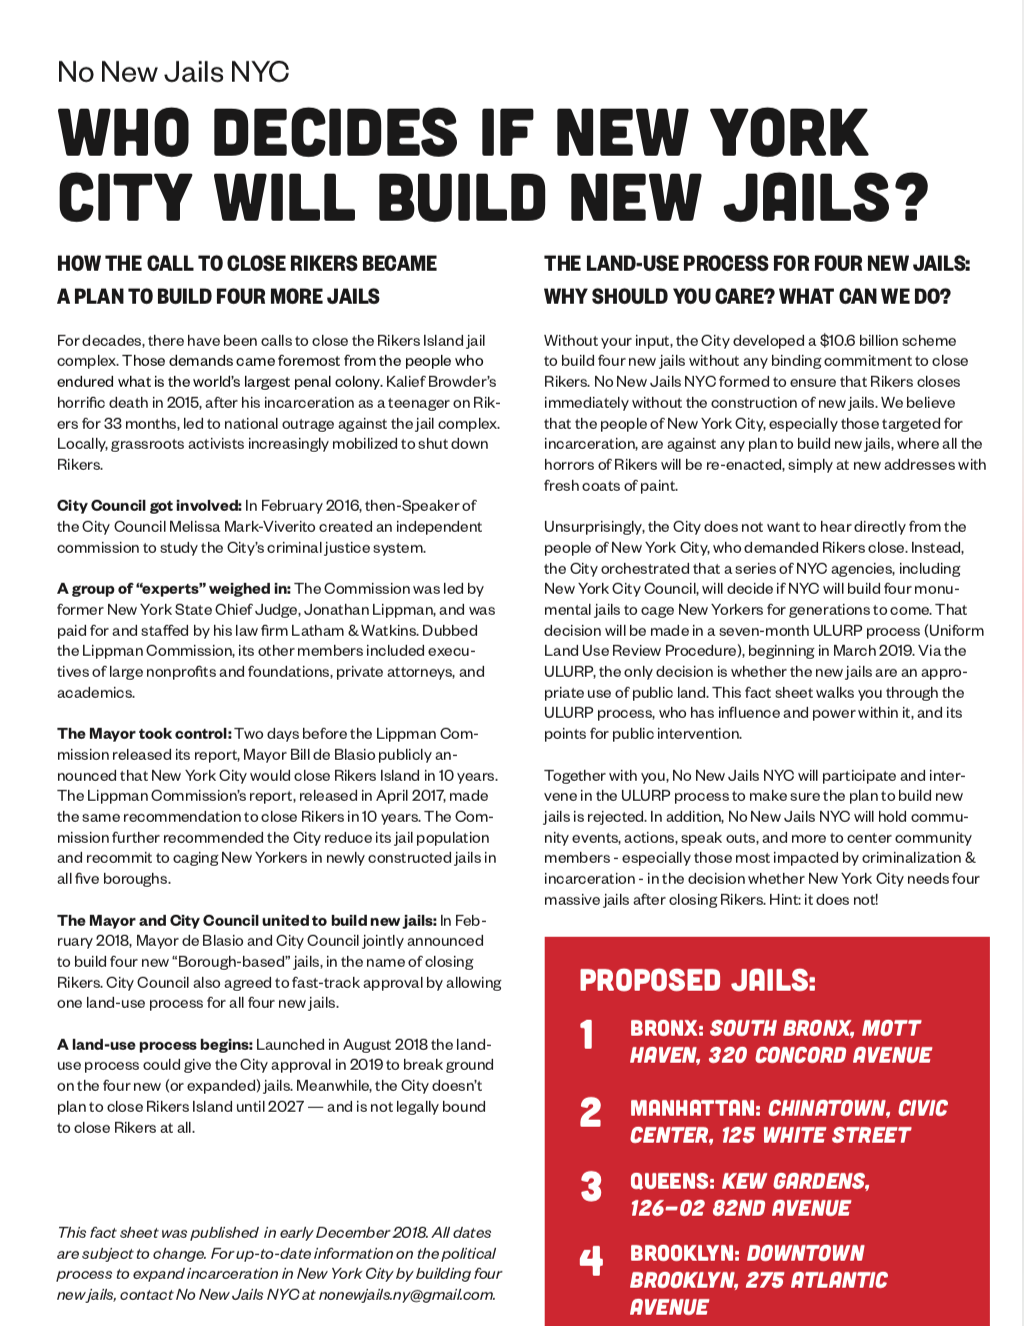 Who Decides if New York City Will Build New Jails?